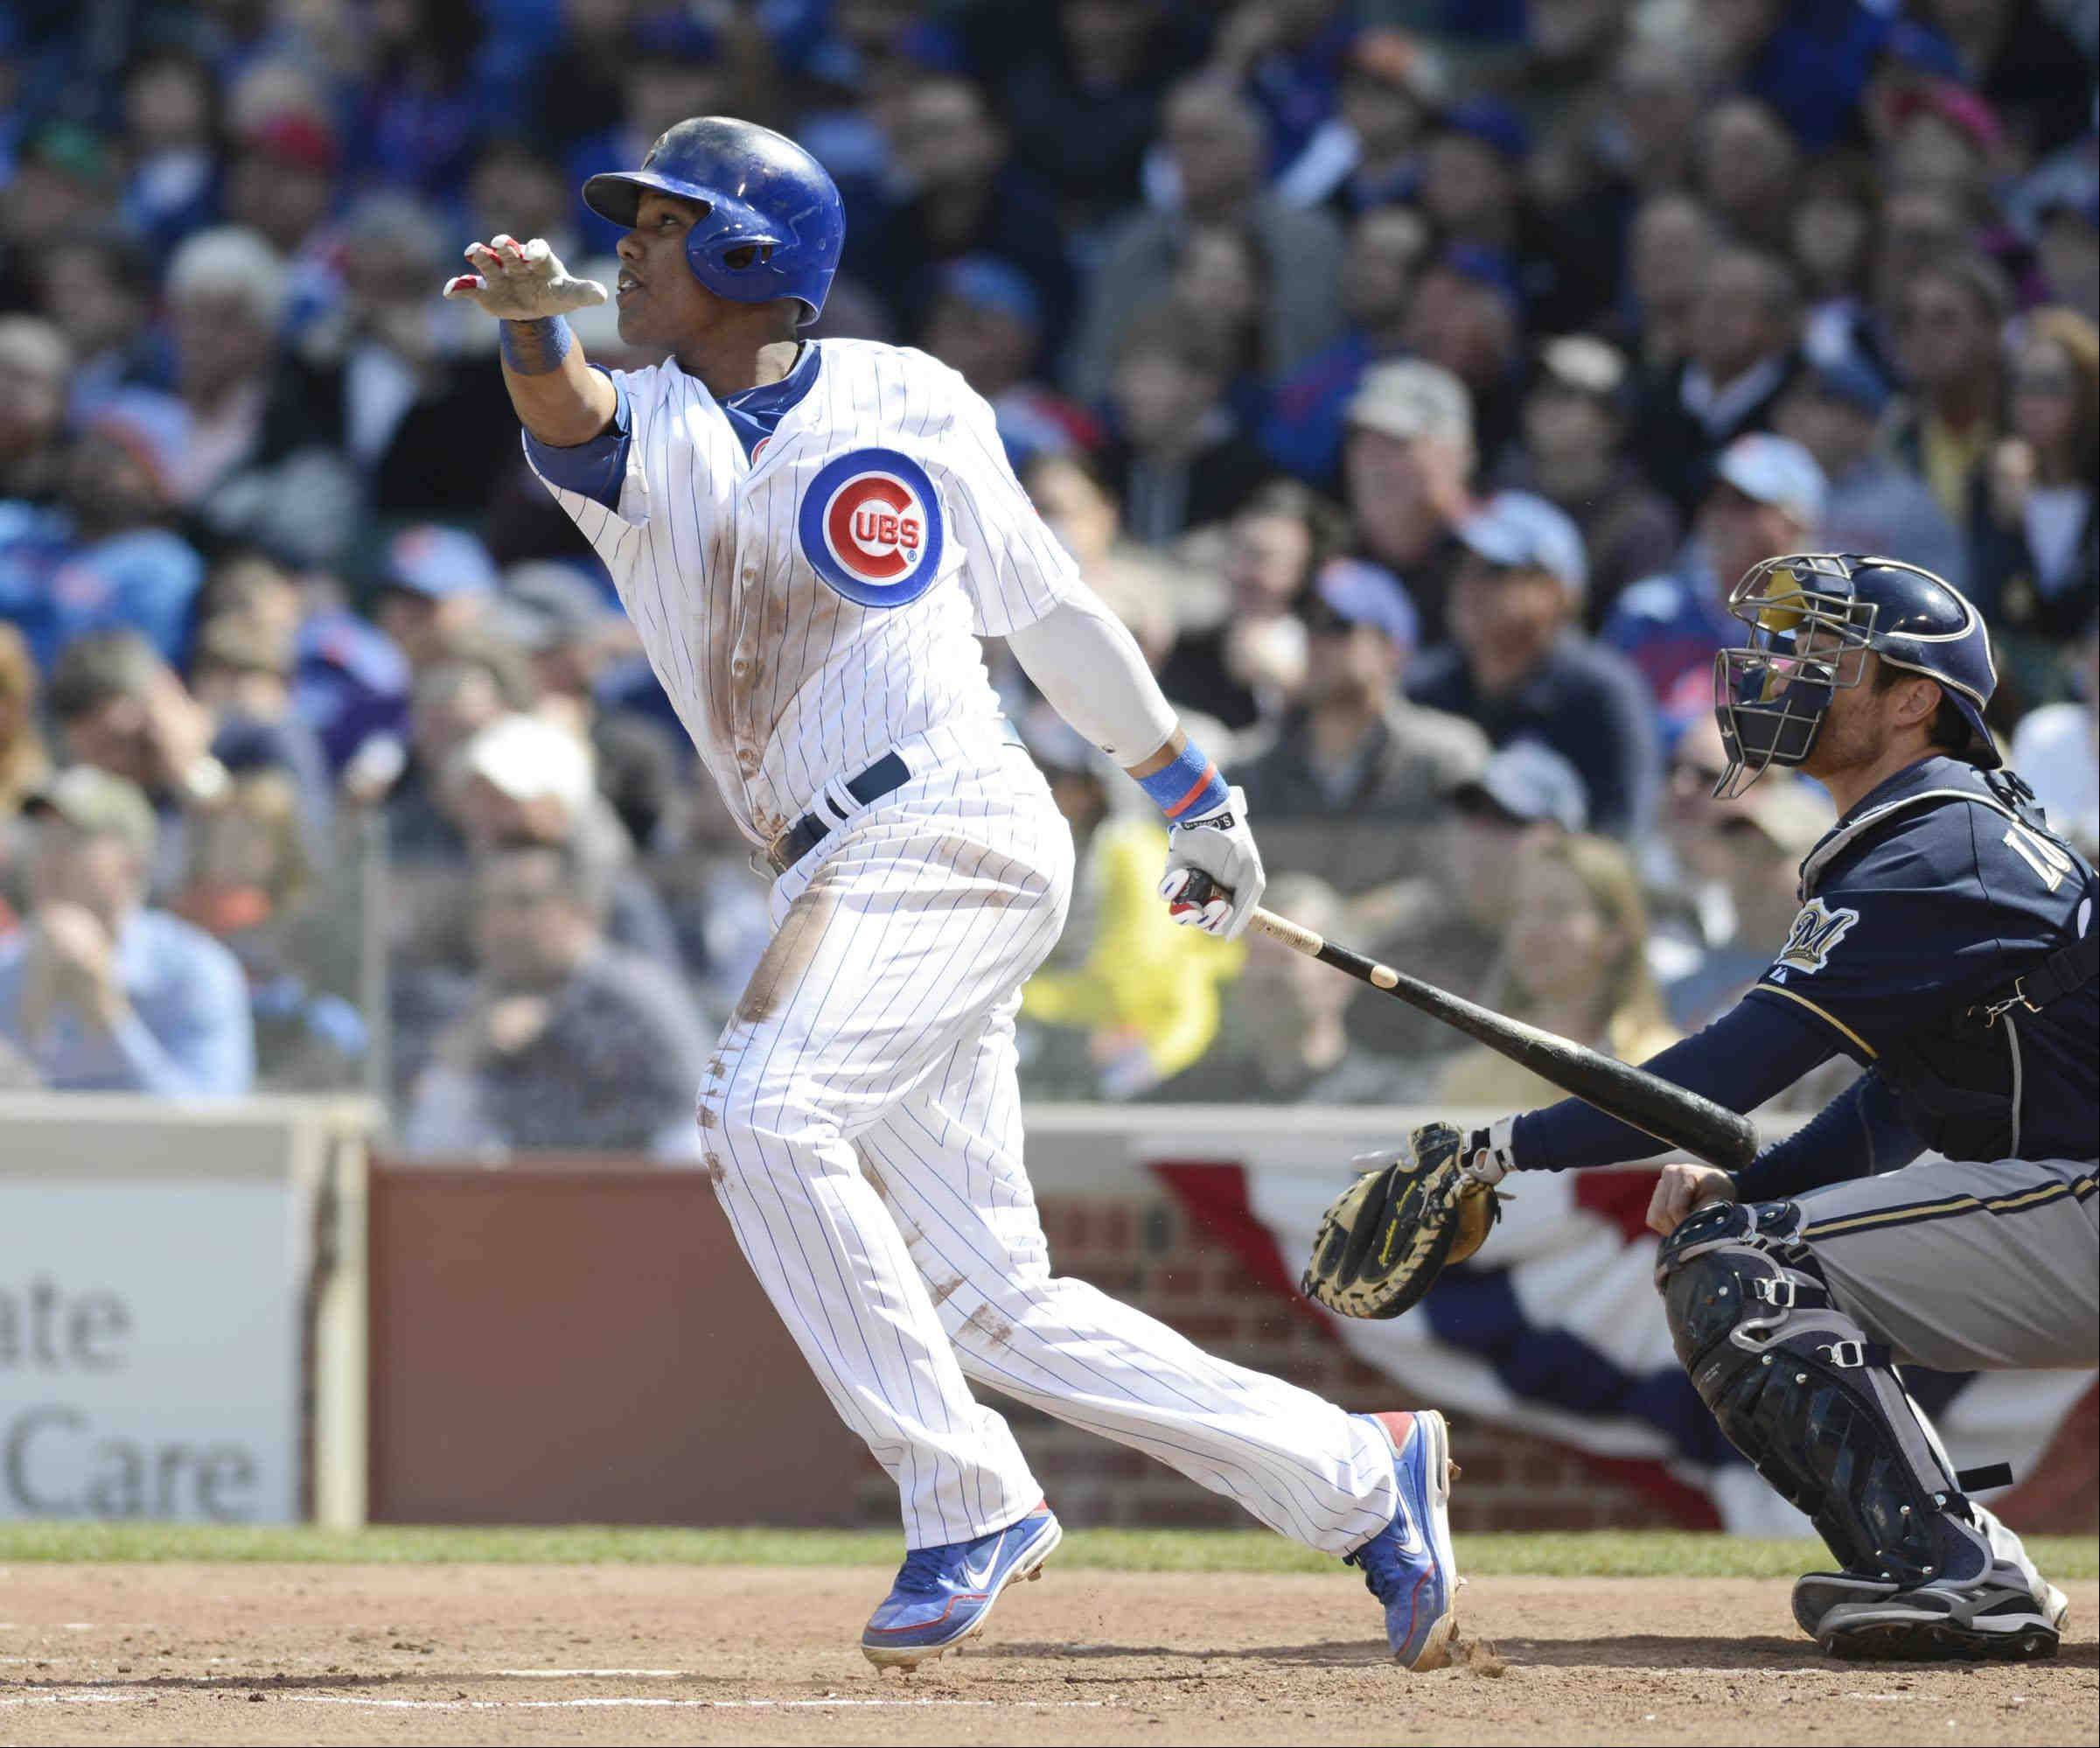 Cubs shortstop Starlin Castro hits a triple with two outs in the third inning against the Brewers at Wrigley Field on Monday.